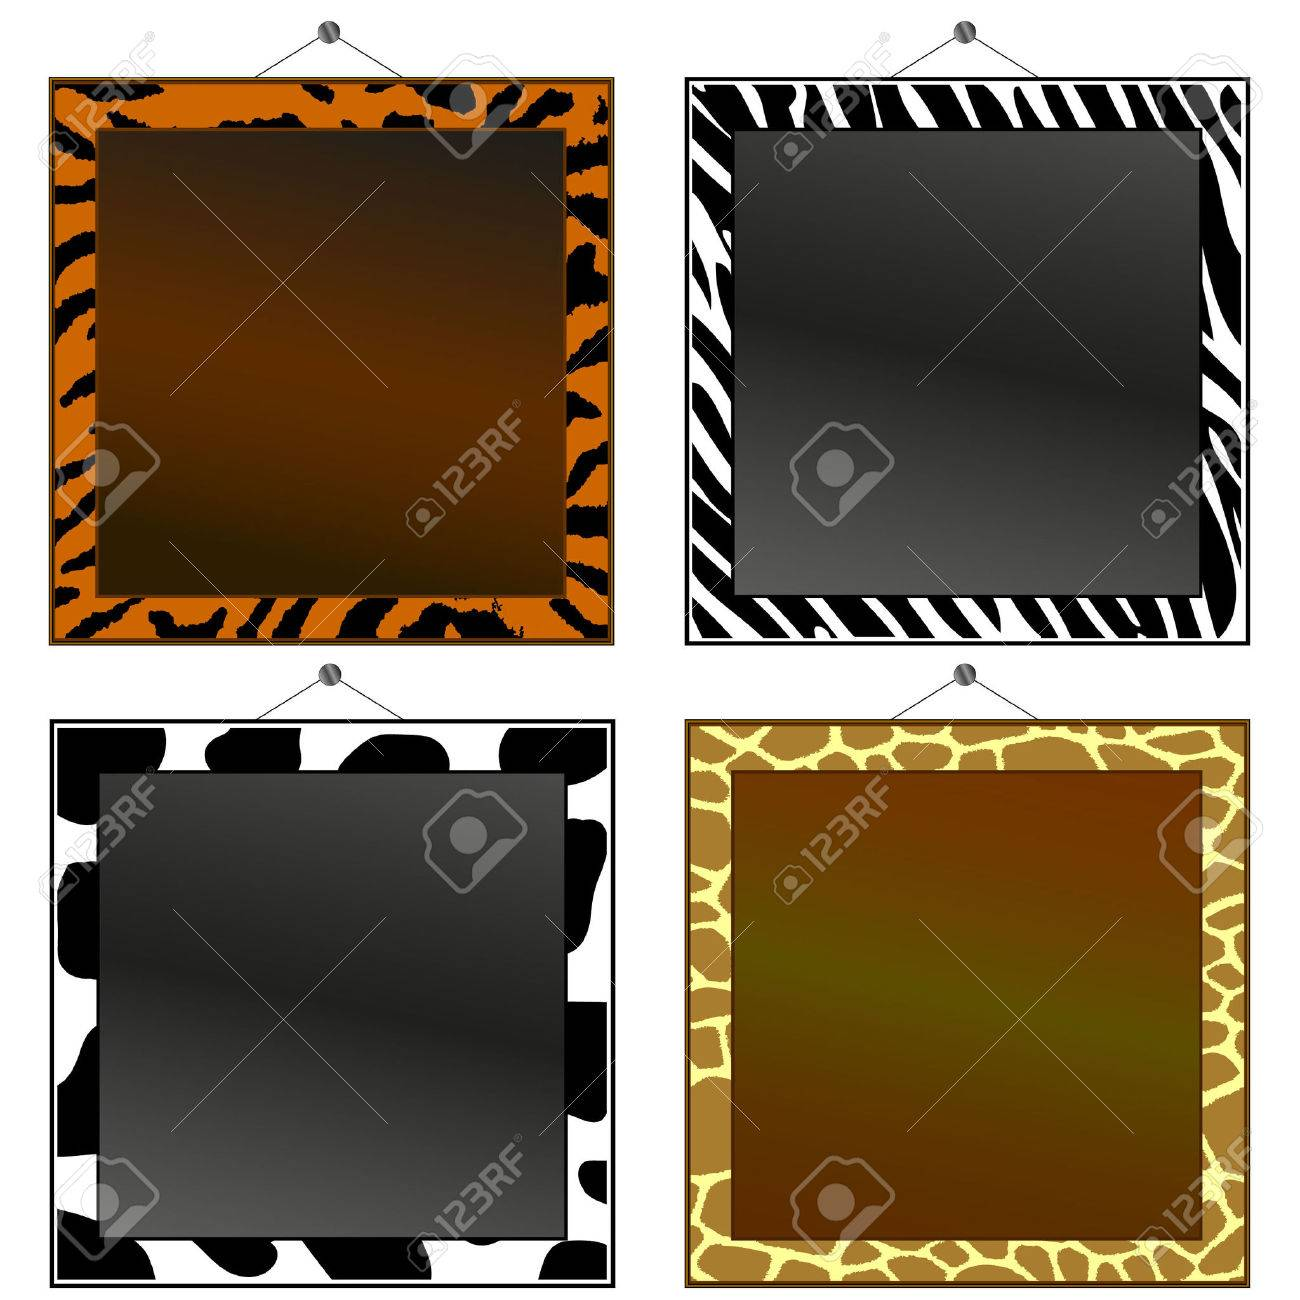 Four Animal Print Frames To Put Your Own Photo Or Text In. Royalty ...